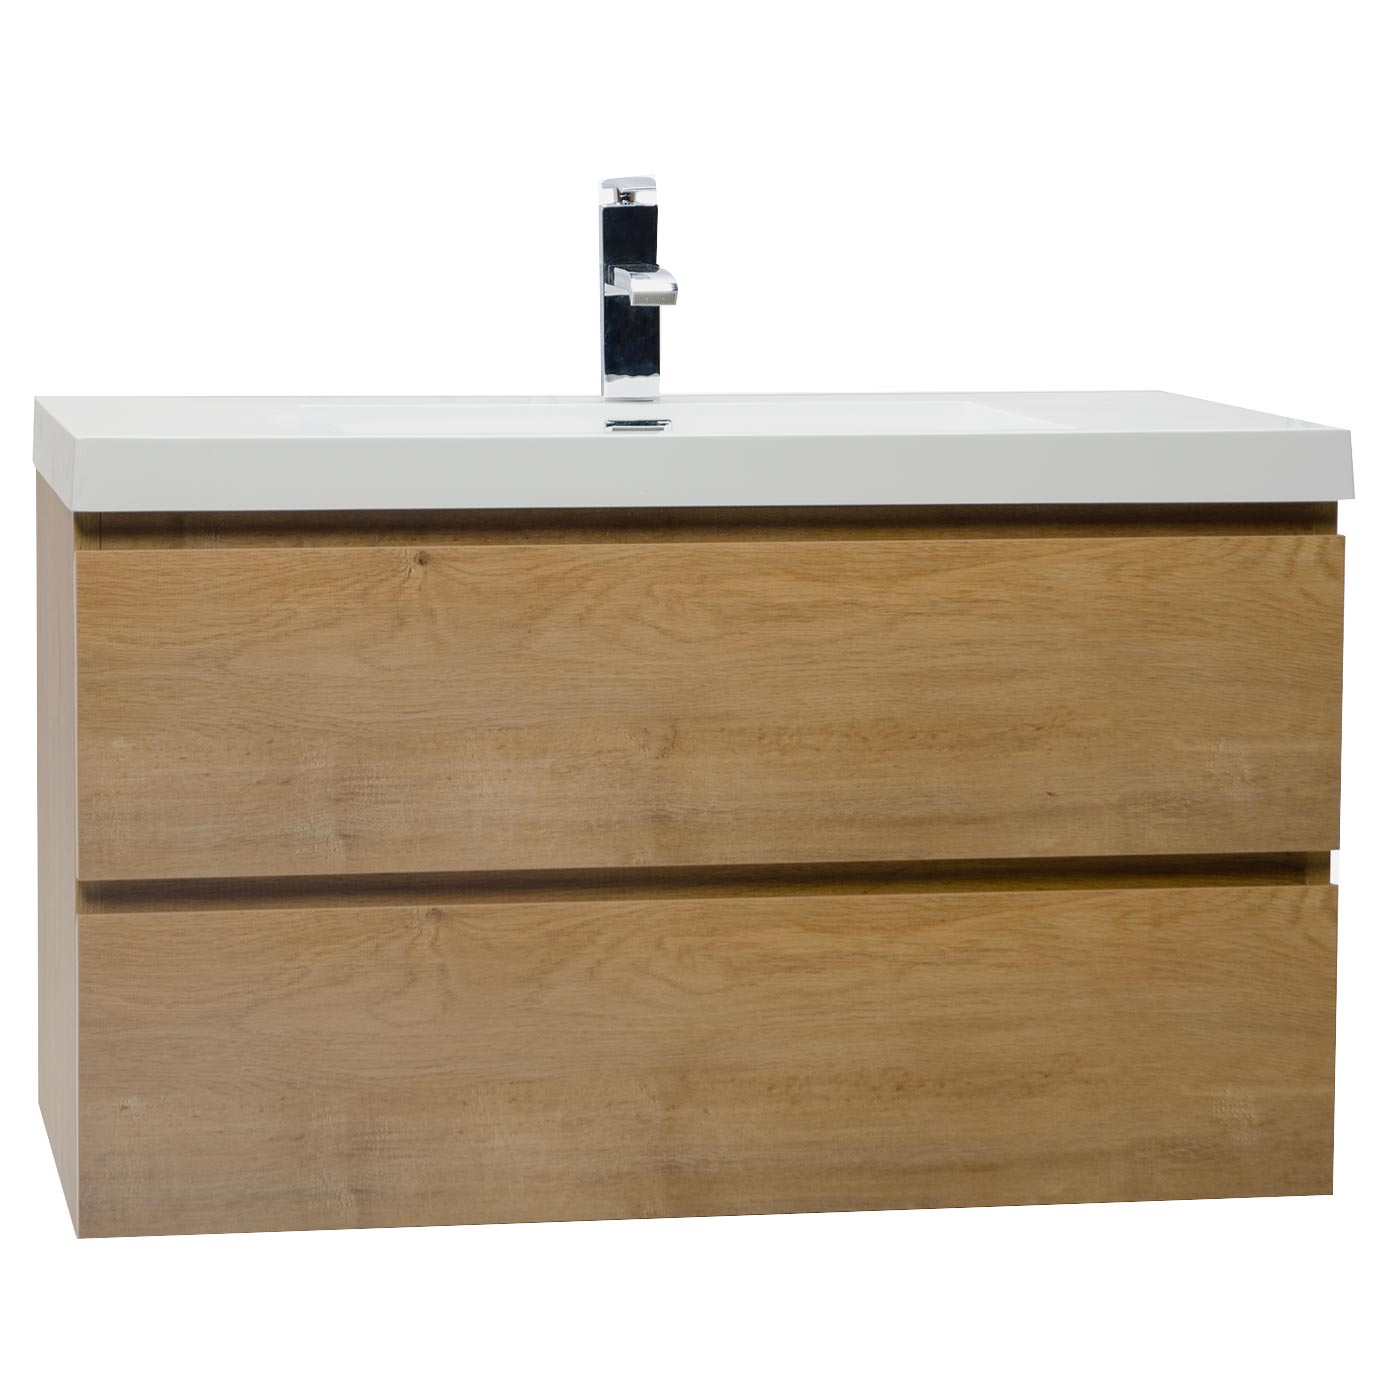 Buy Angela 355 Inch WallMount Bathroom Vanity in Natural